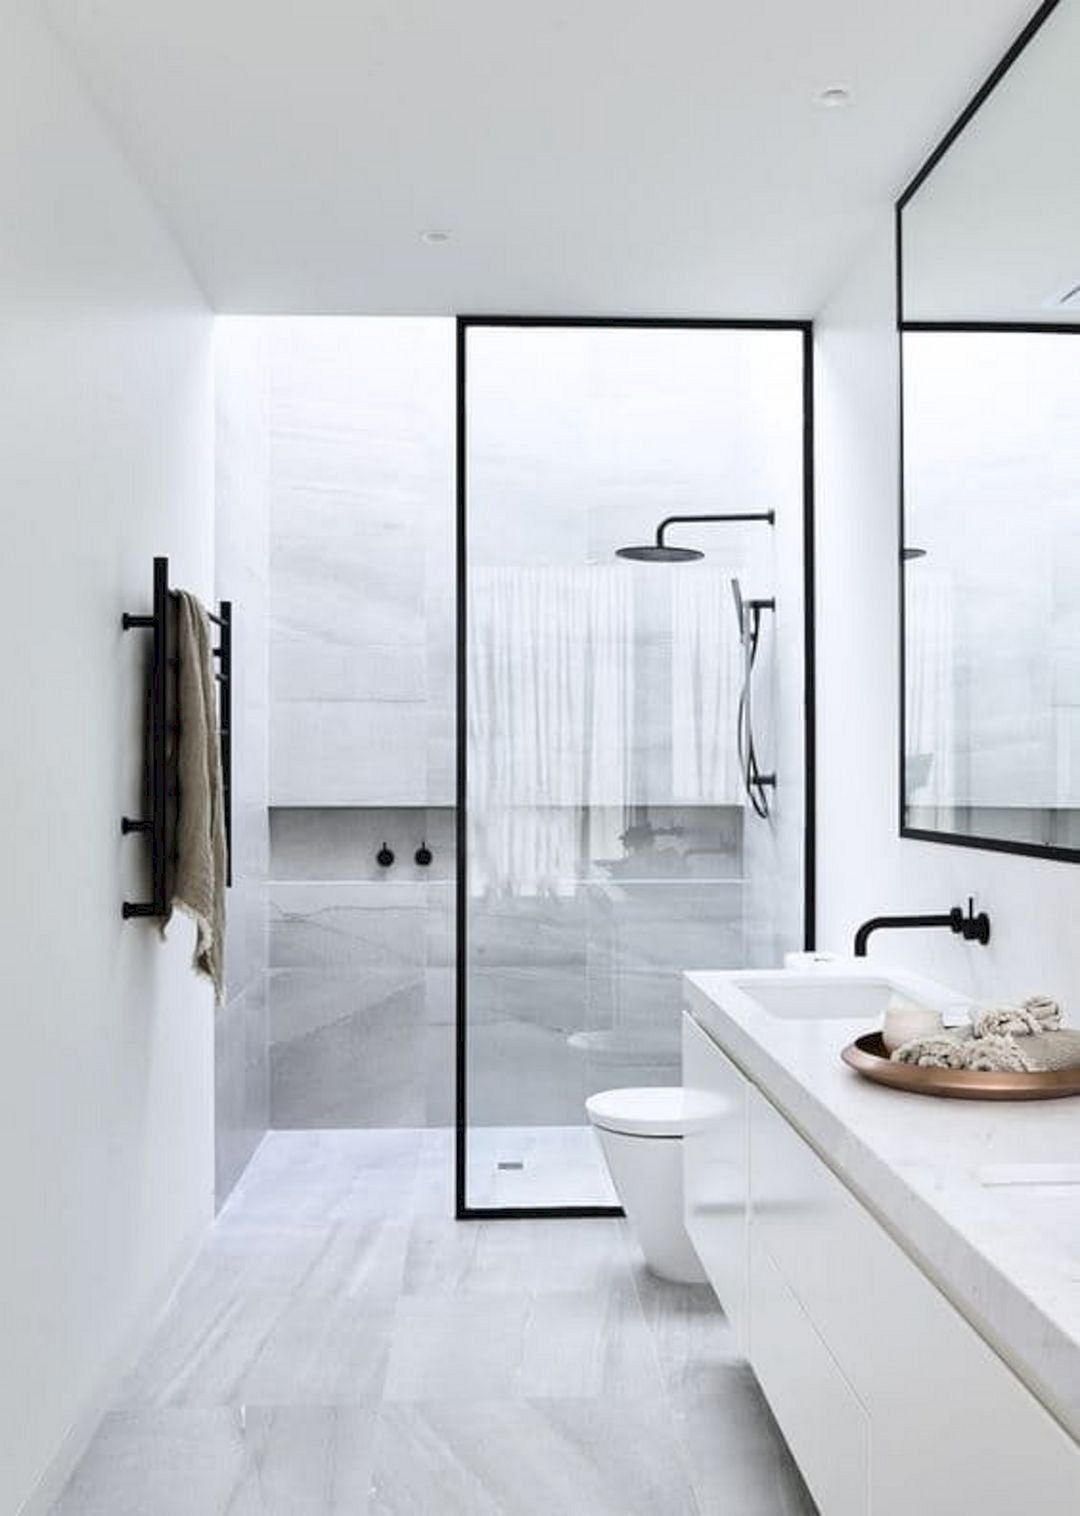 115 Extraordinary Small Bathroom Designs For Small Space | Pinterest ...